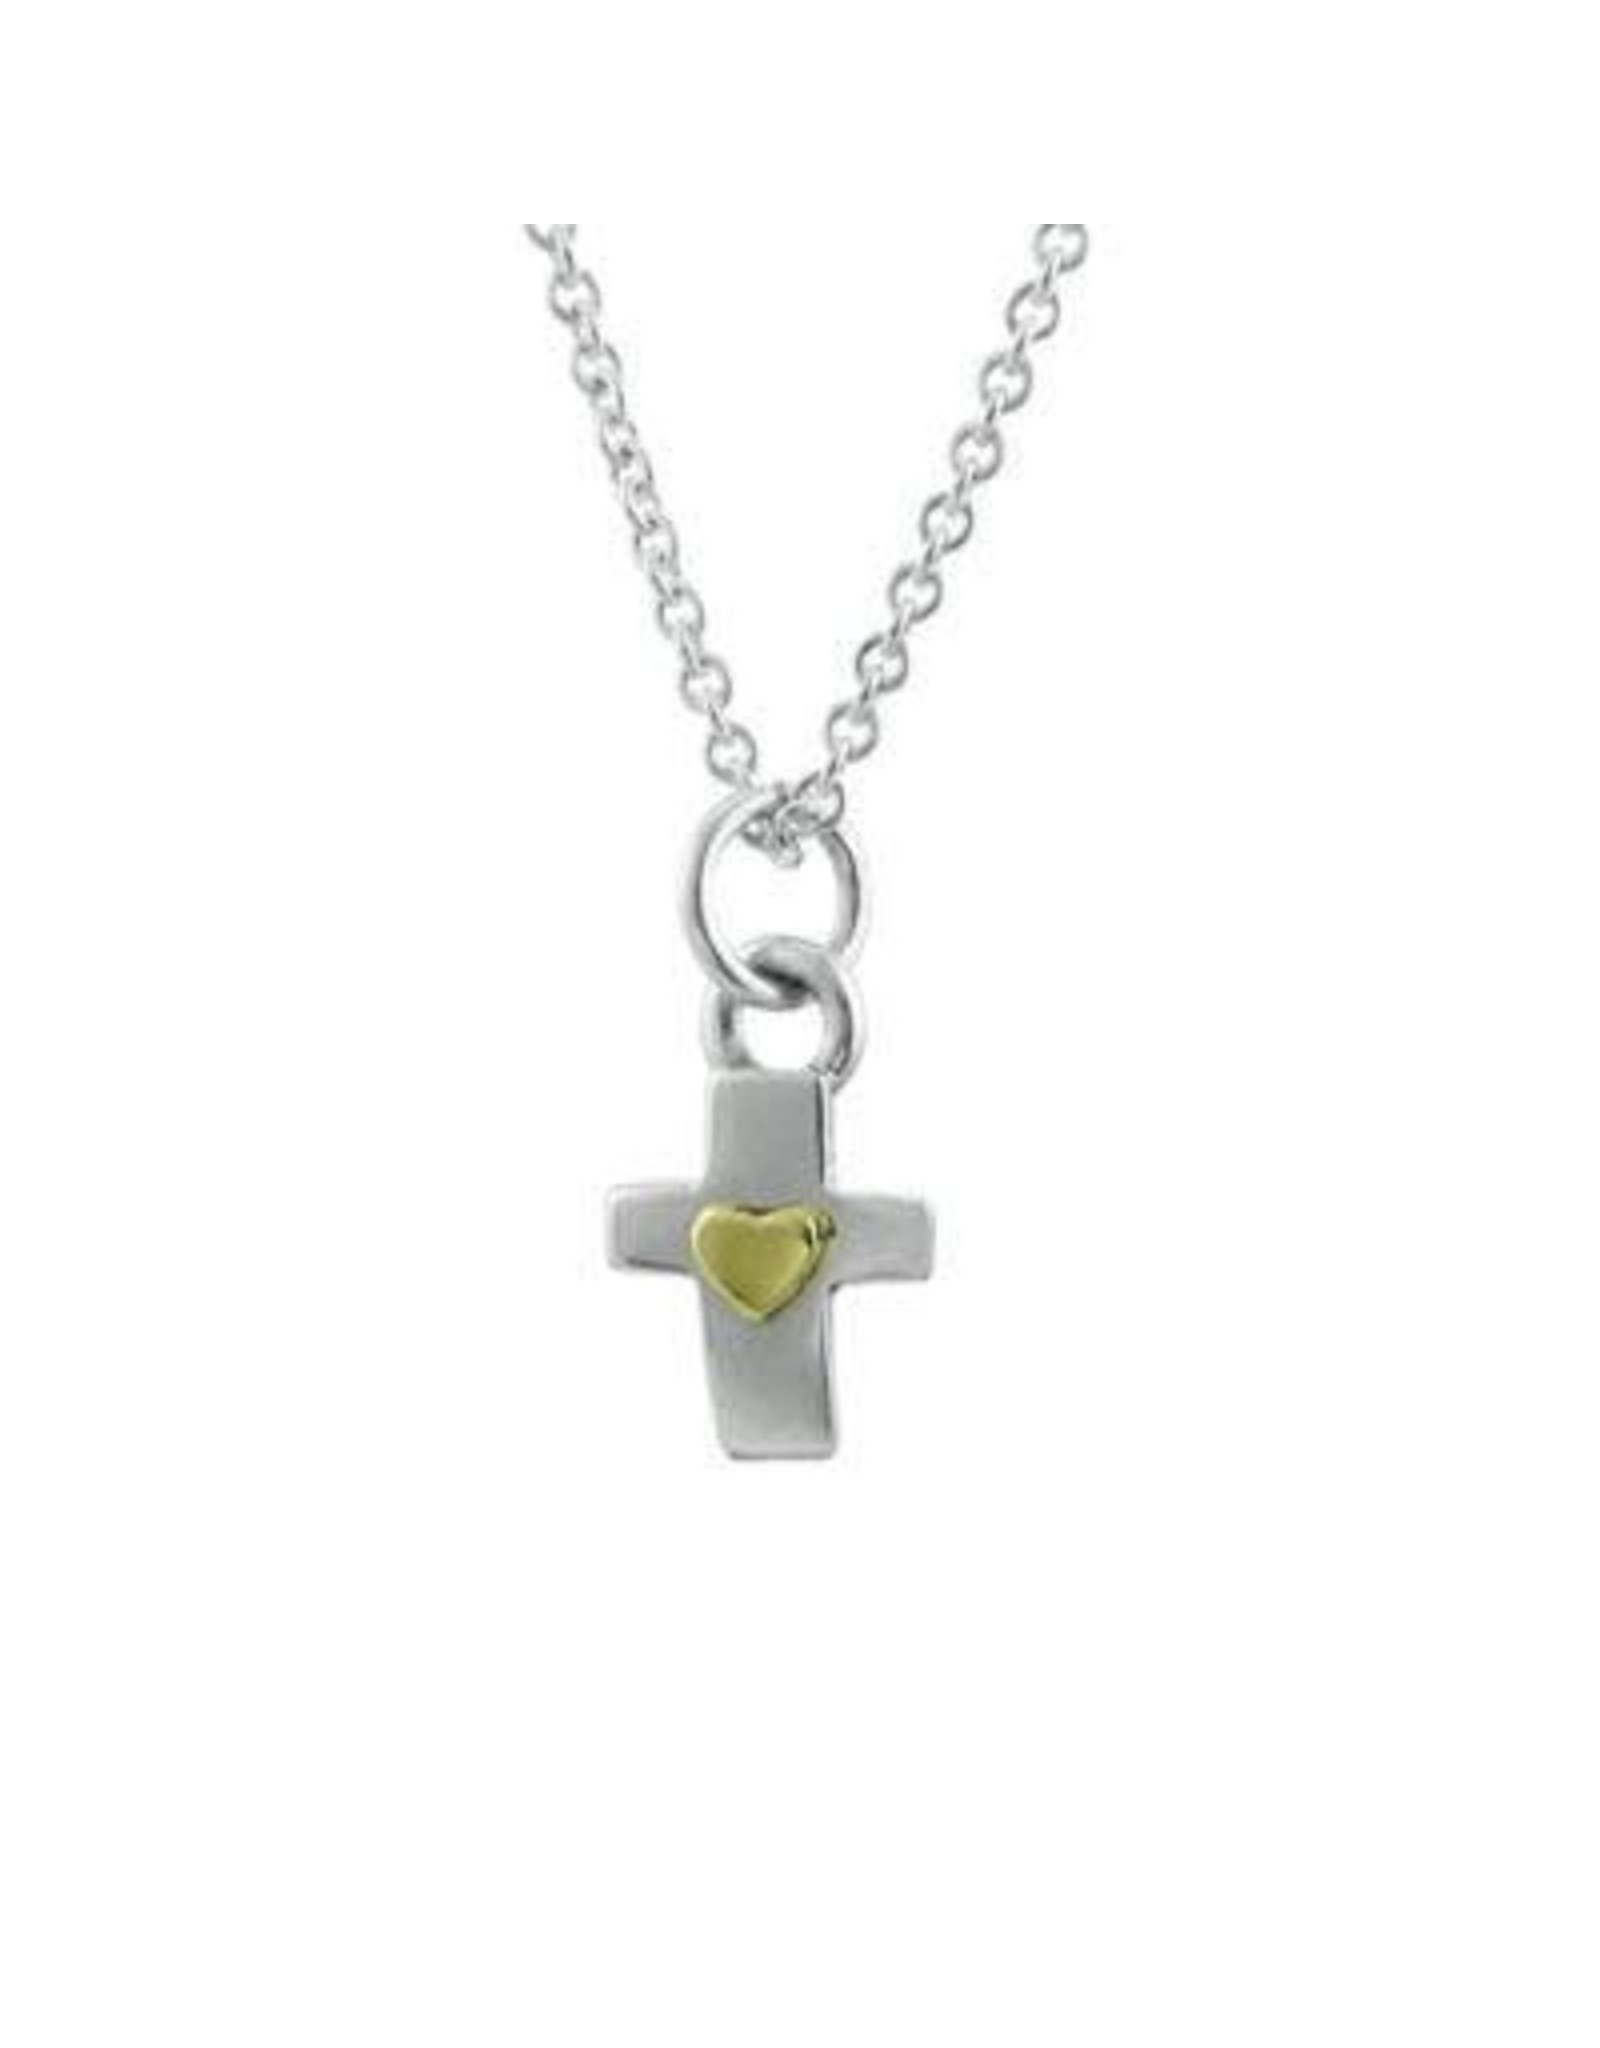 Cross with Heart Sterling Necklace, Mexico